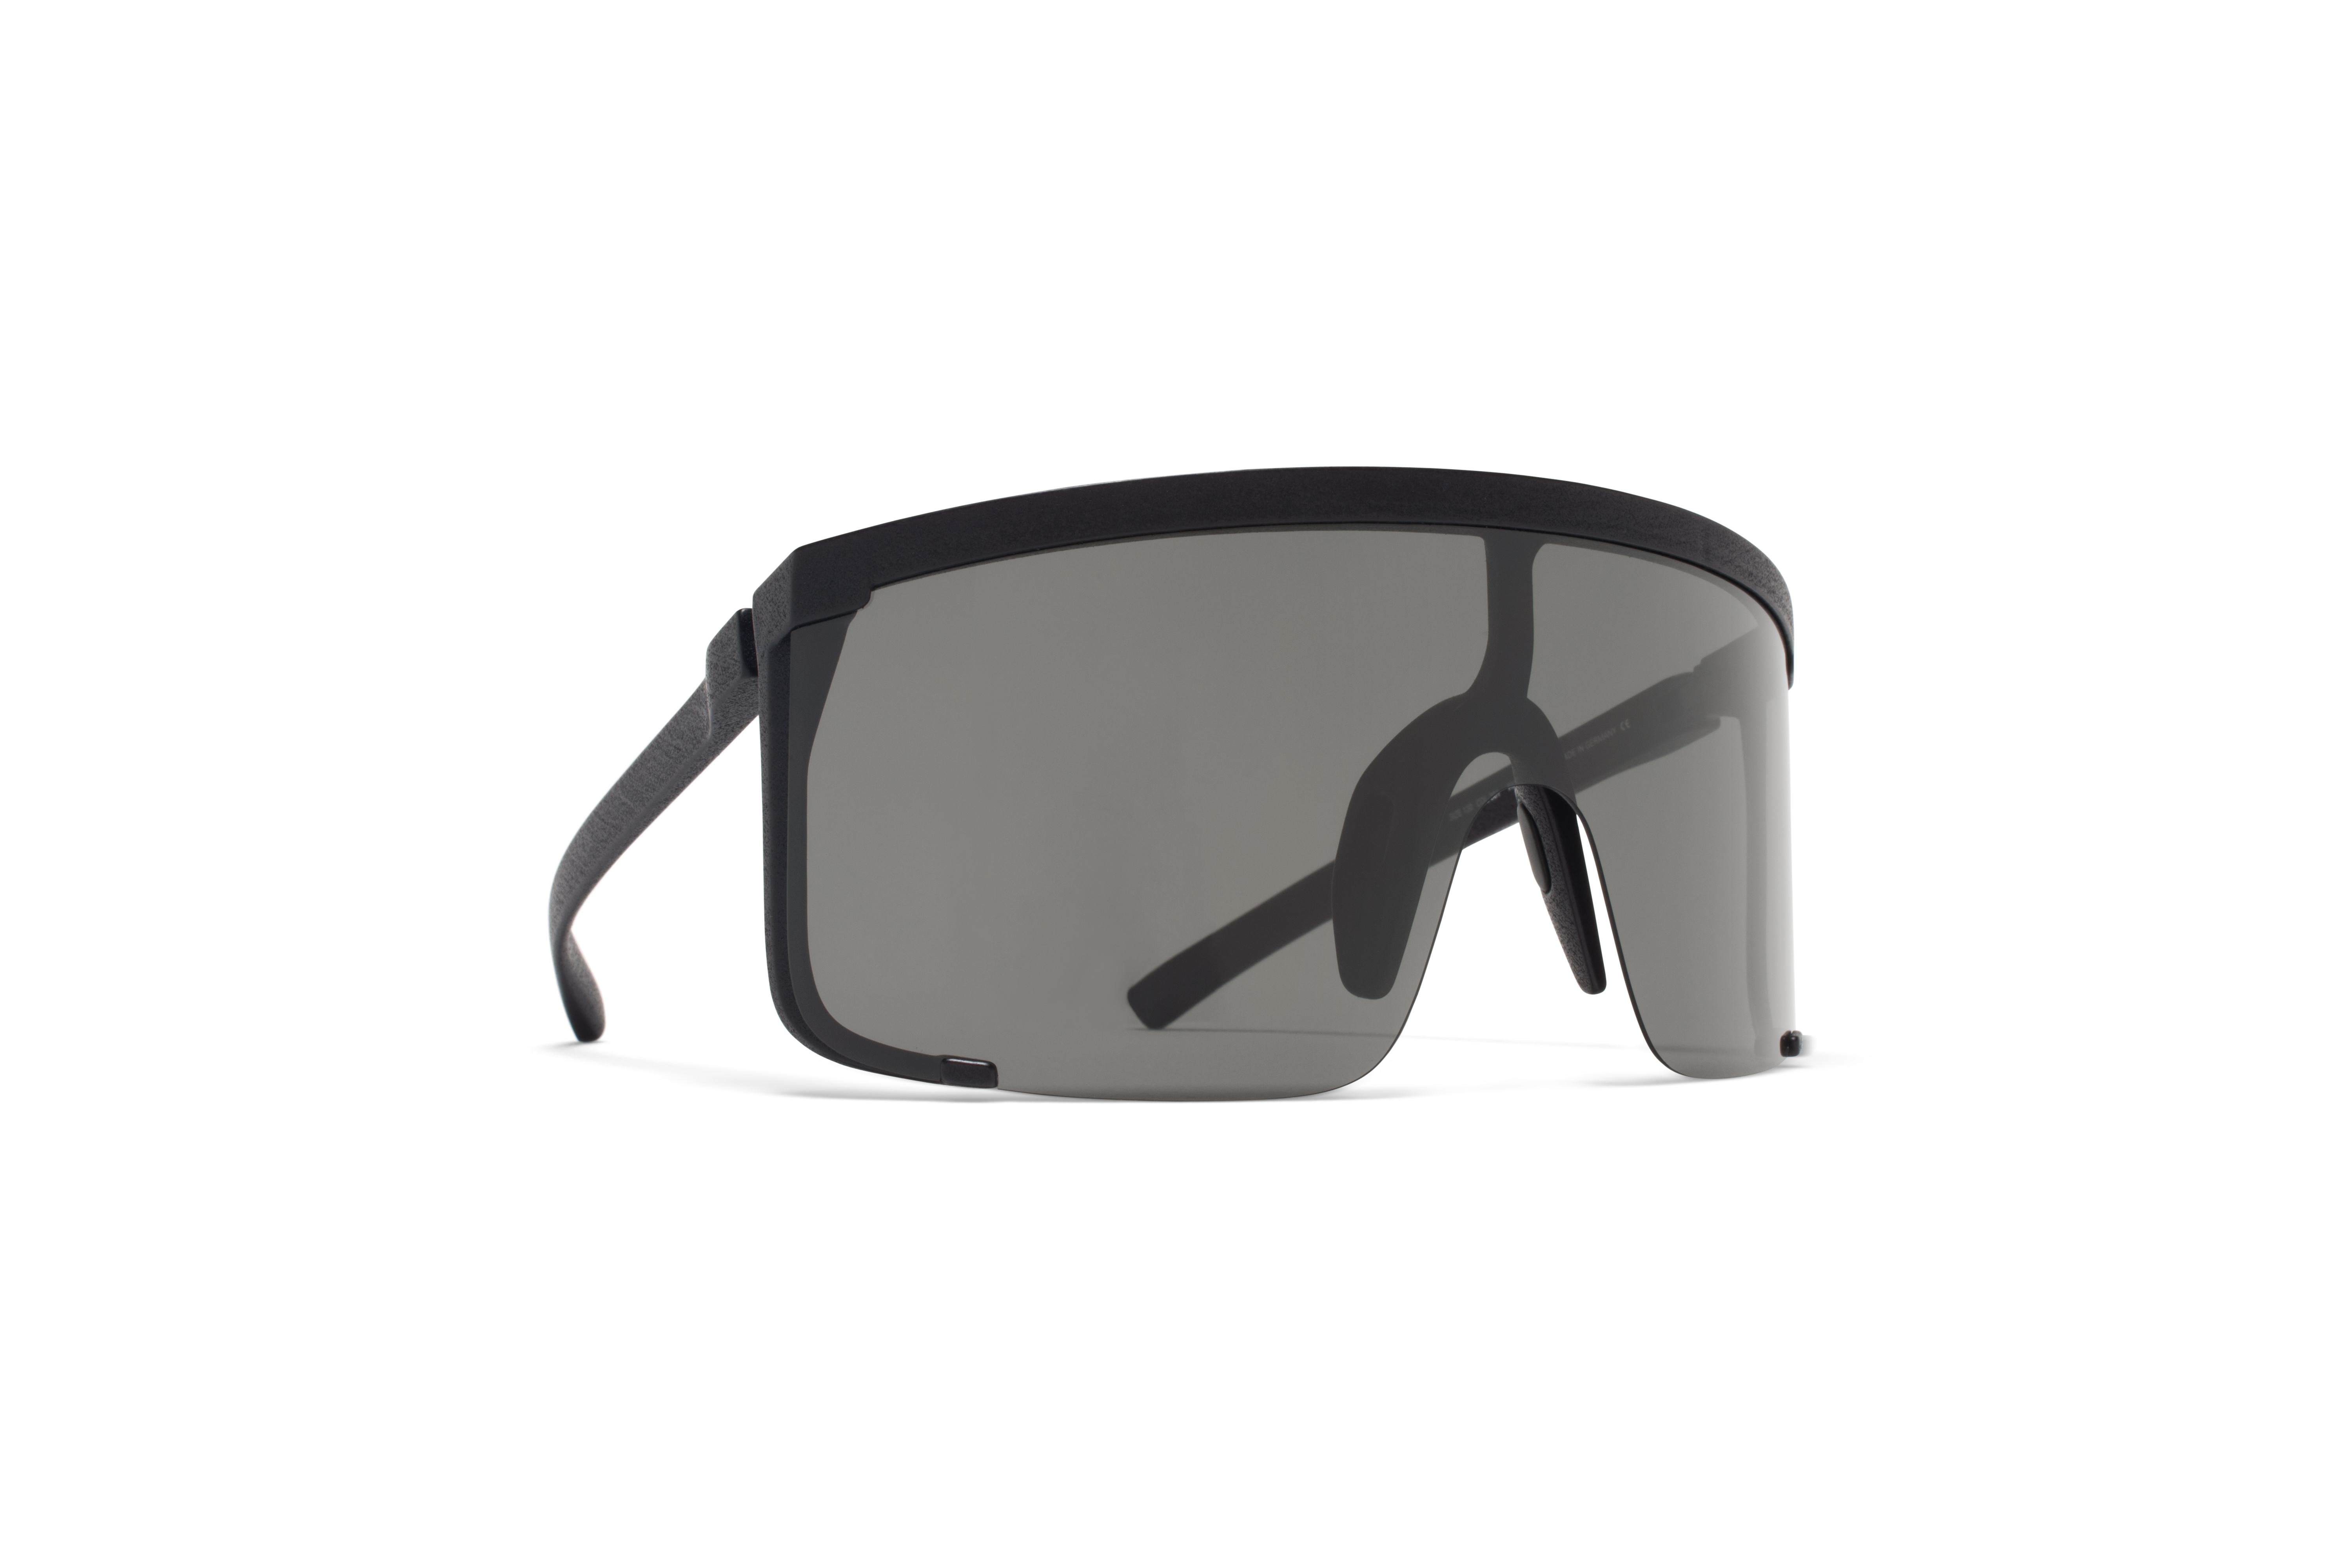 MYKITA Mylon Sun Rocket Md1 Pitch Black Darkgrey S58d52eefd7e18